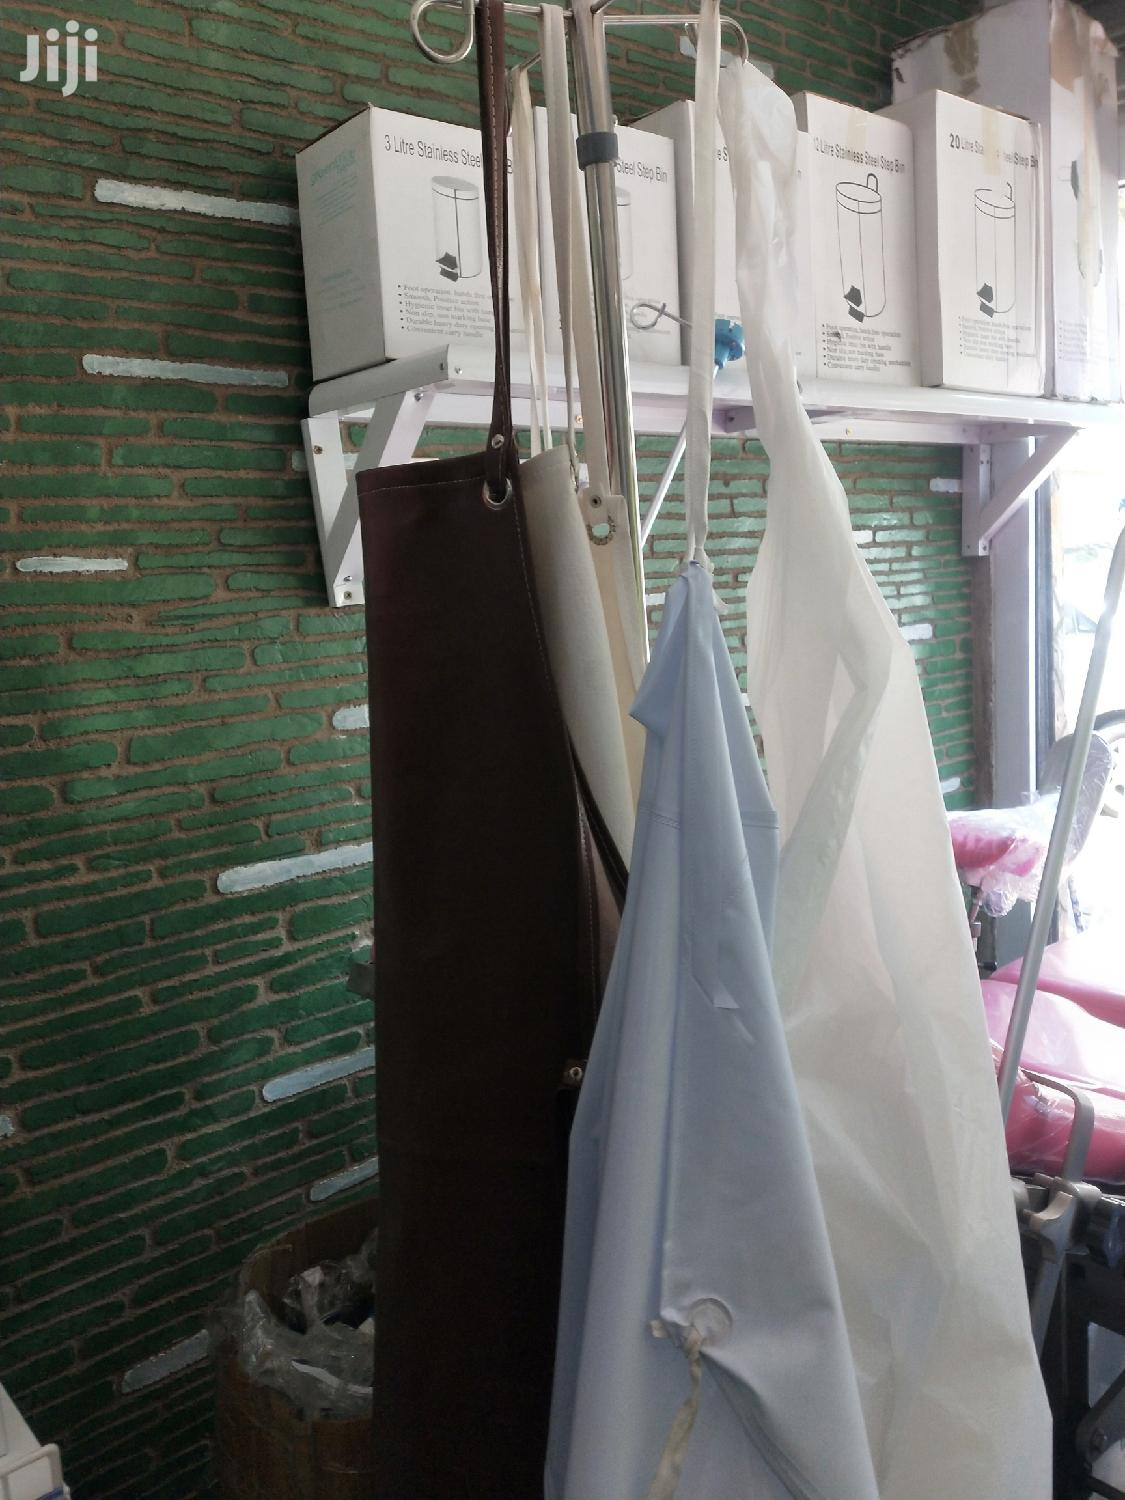 Mackintosh Surgical Apron | Medical Equipment for sale in Dansoman, Greater Accra, Ghana